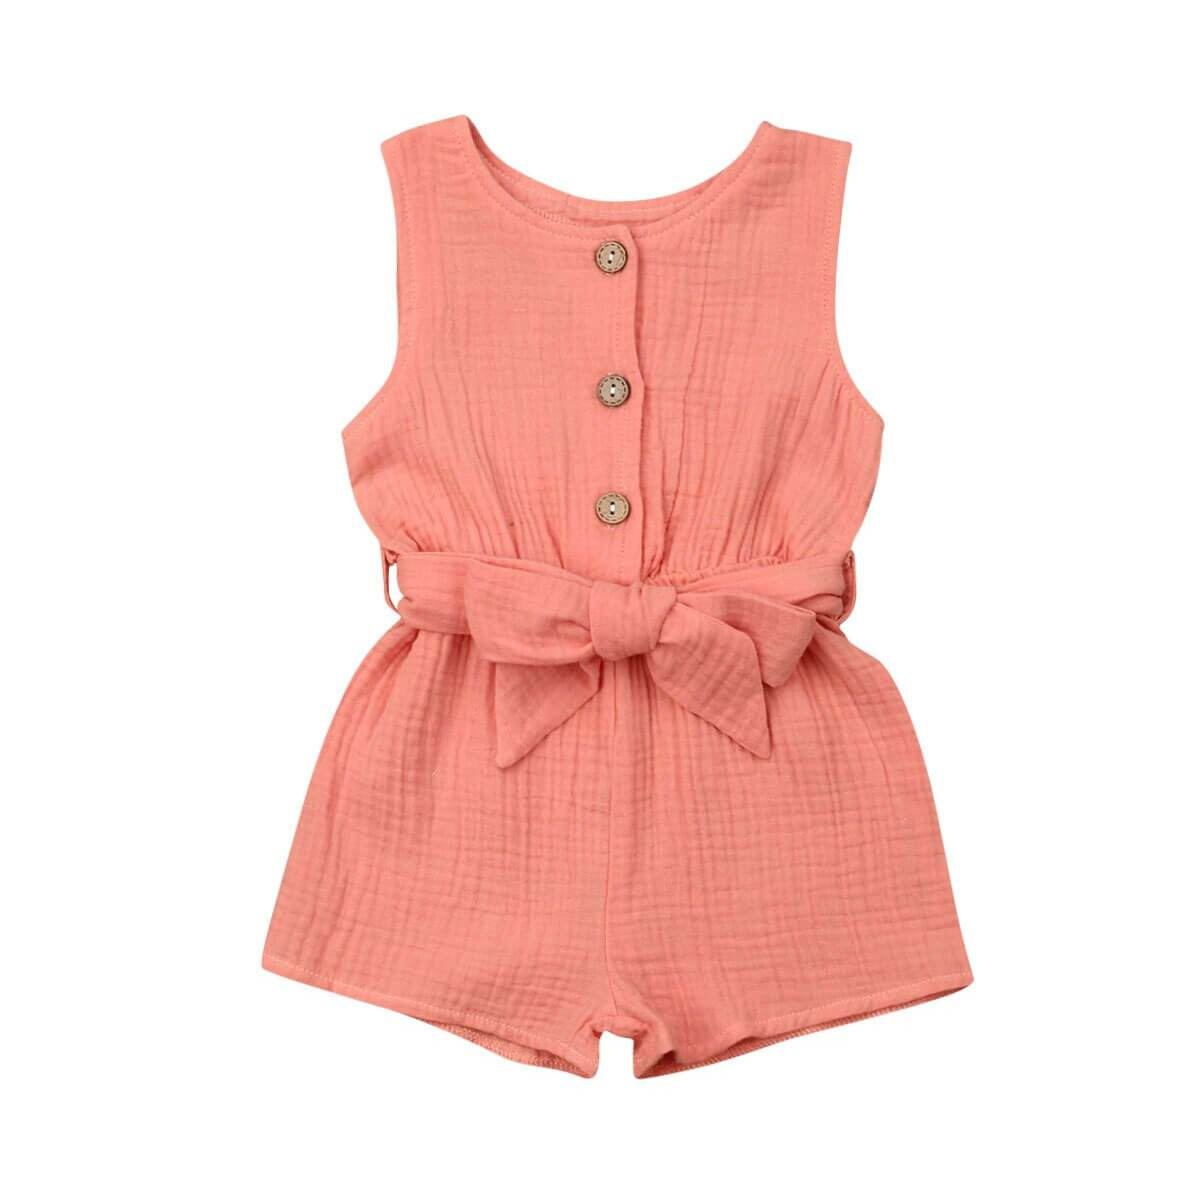 Coral Sleeveless Romper - The Trendy Toddlers